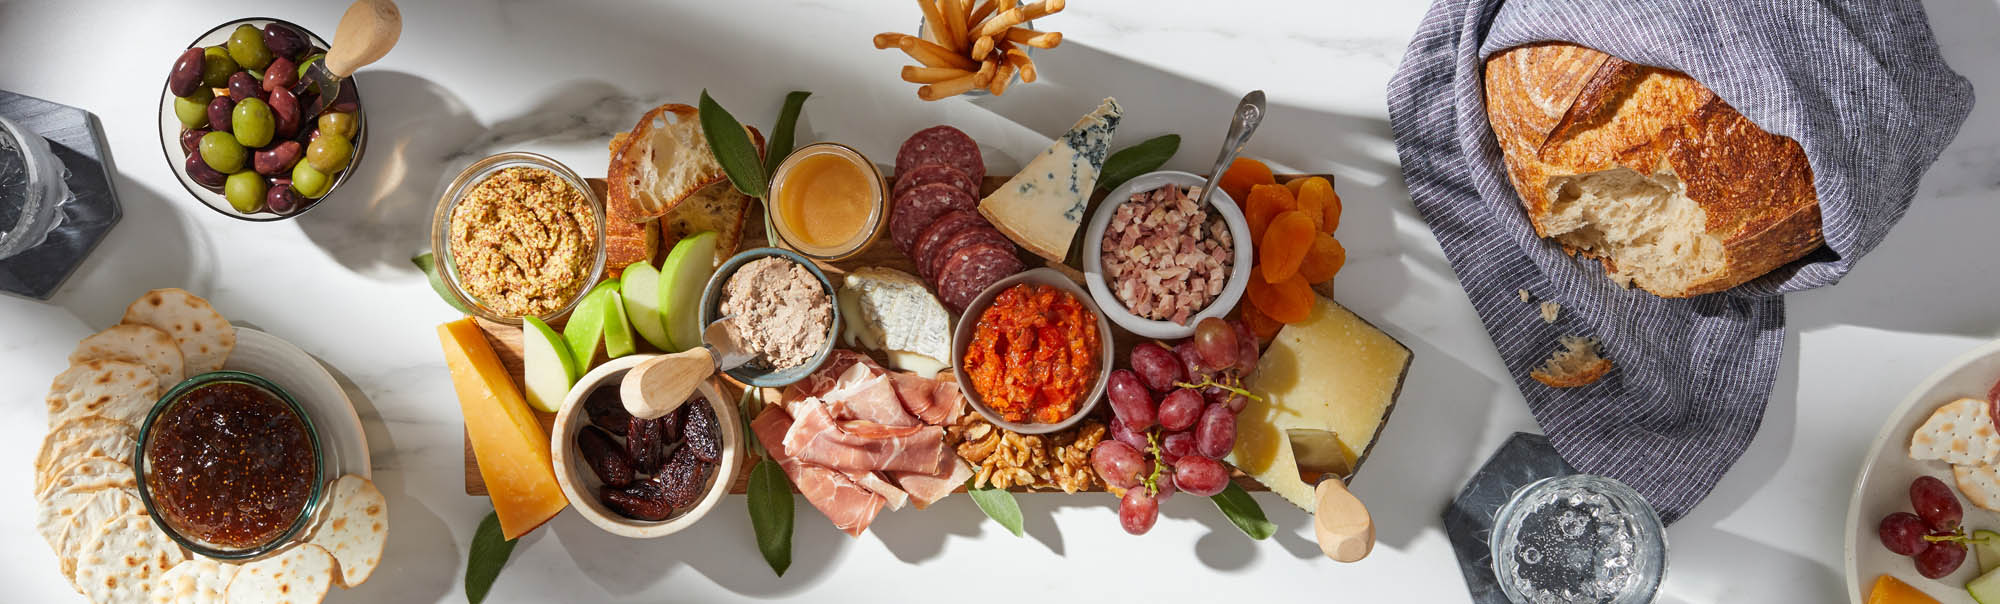 A full charcutiere board with meats fruits breads crackers and more - modern food photography